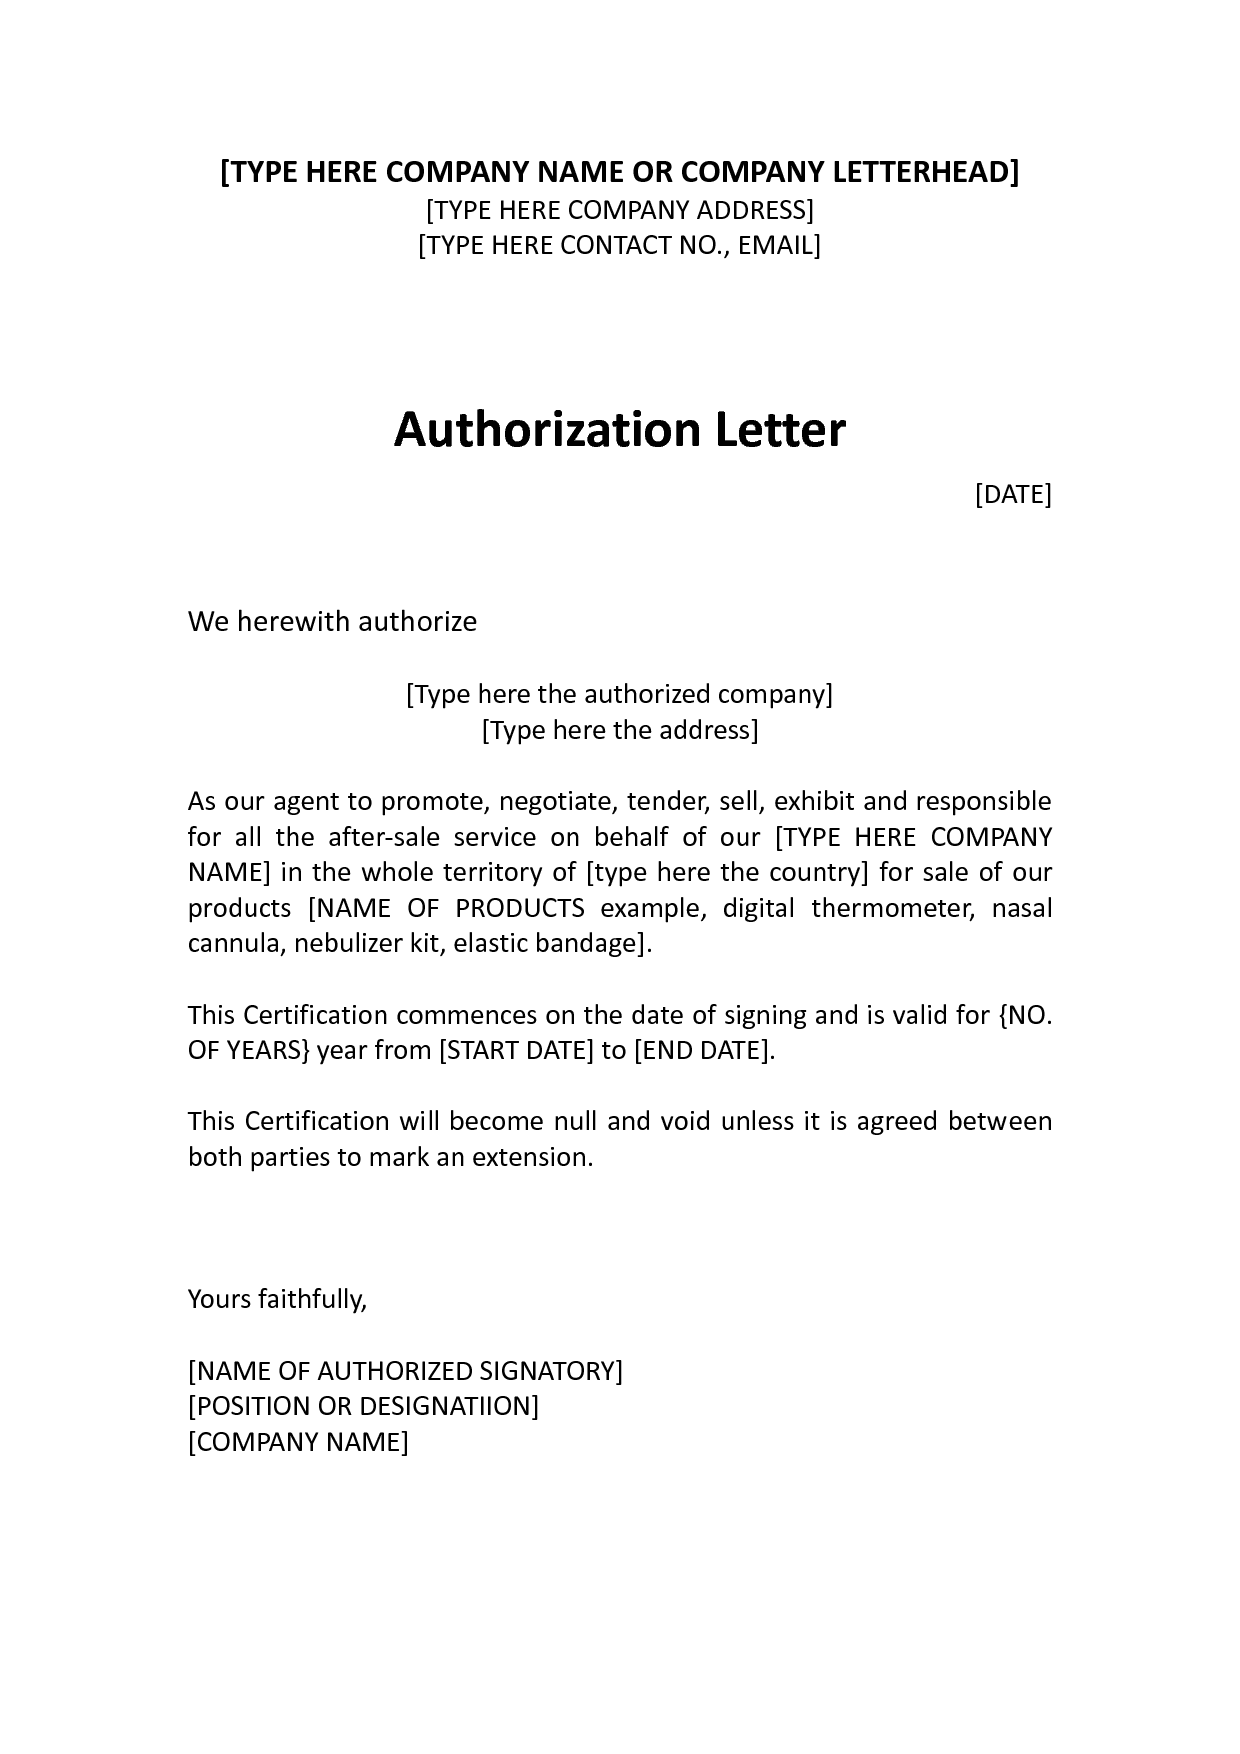 Tender Authorization Letter Authorization Letter to Purchase – Sample Third Party Authorization Letter